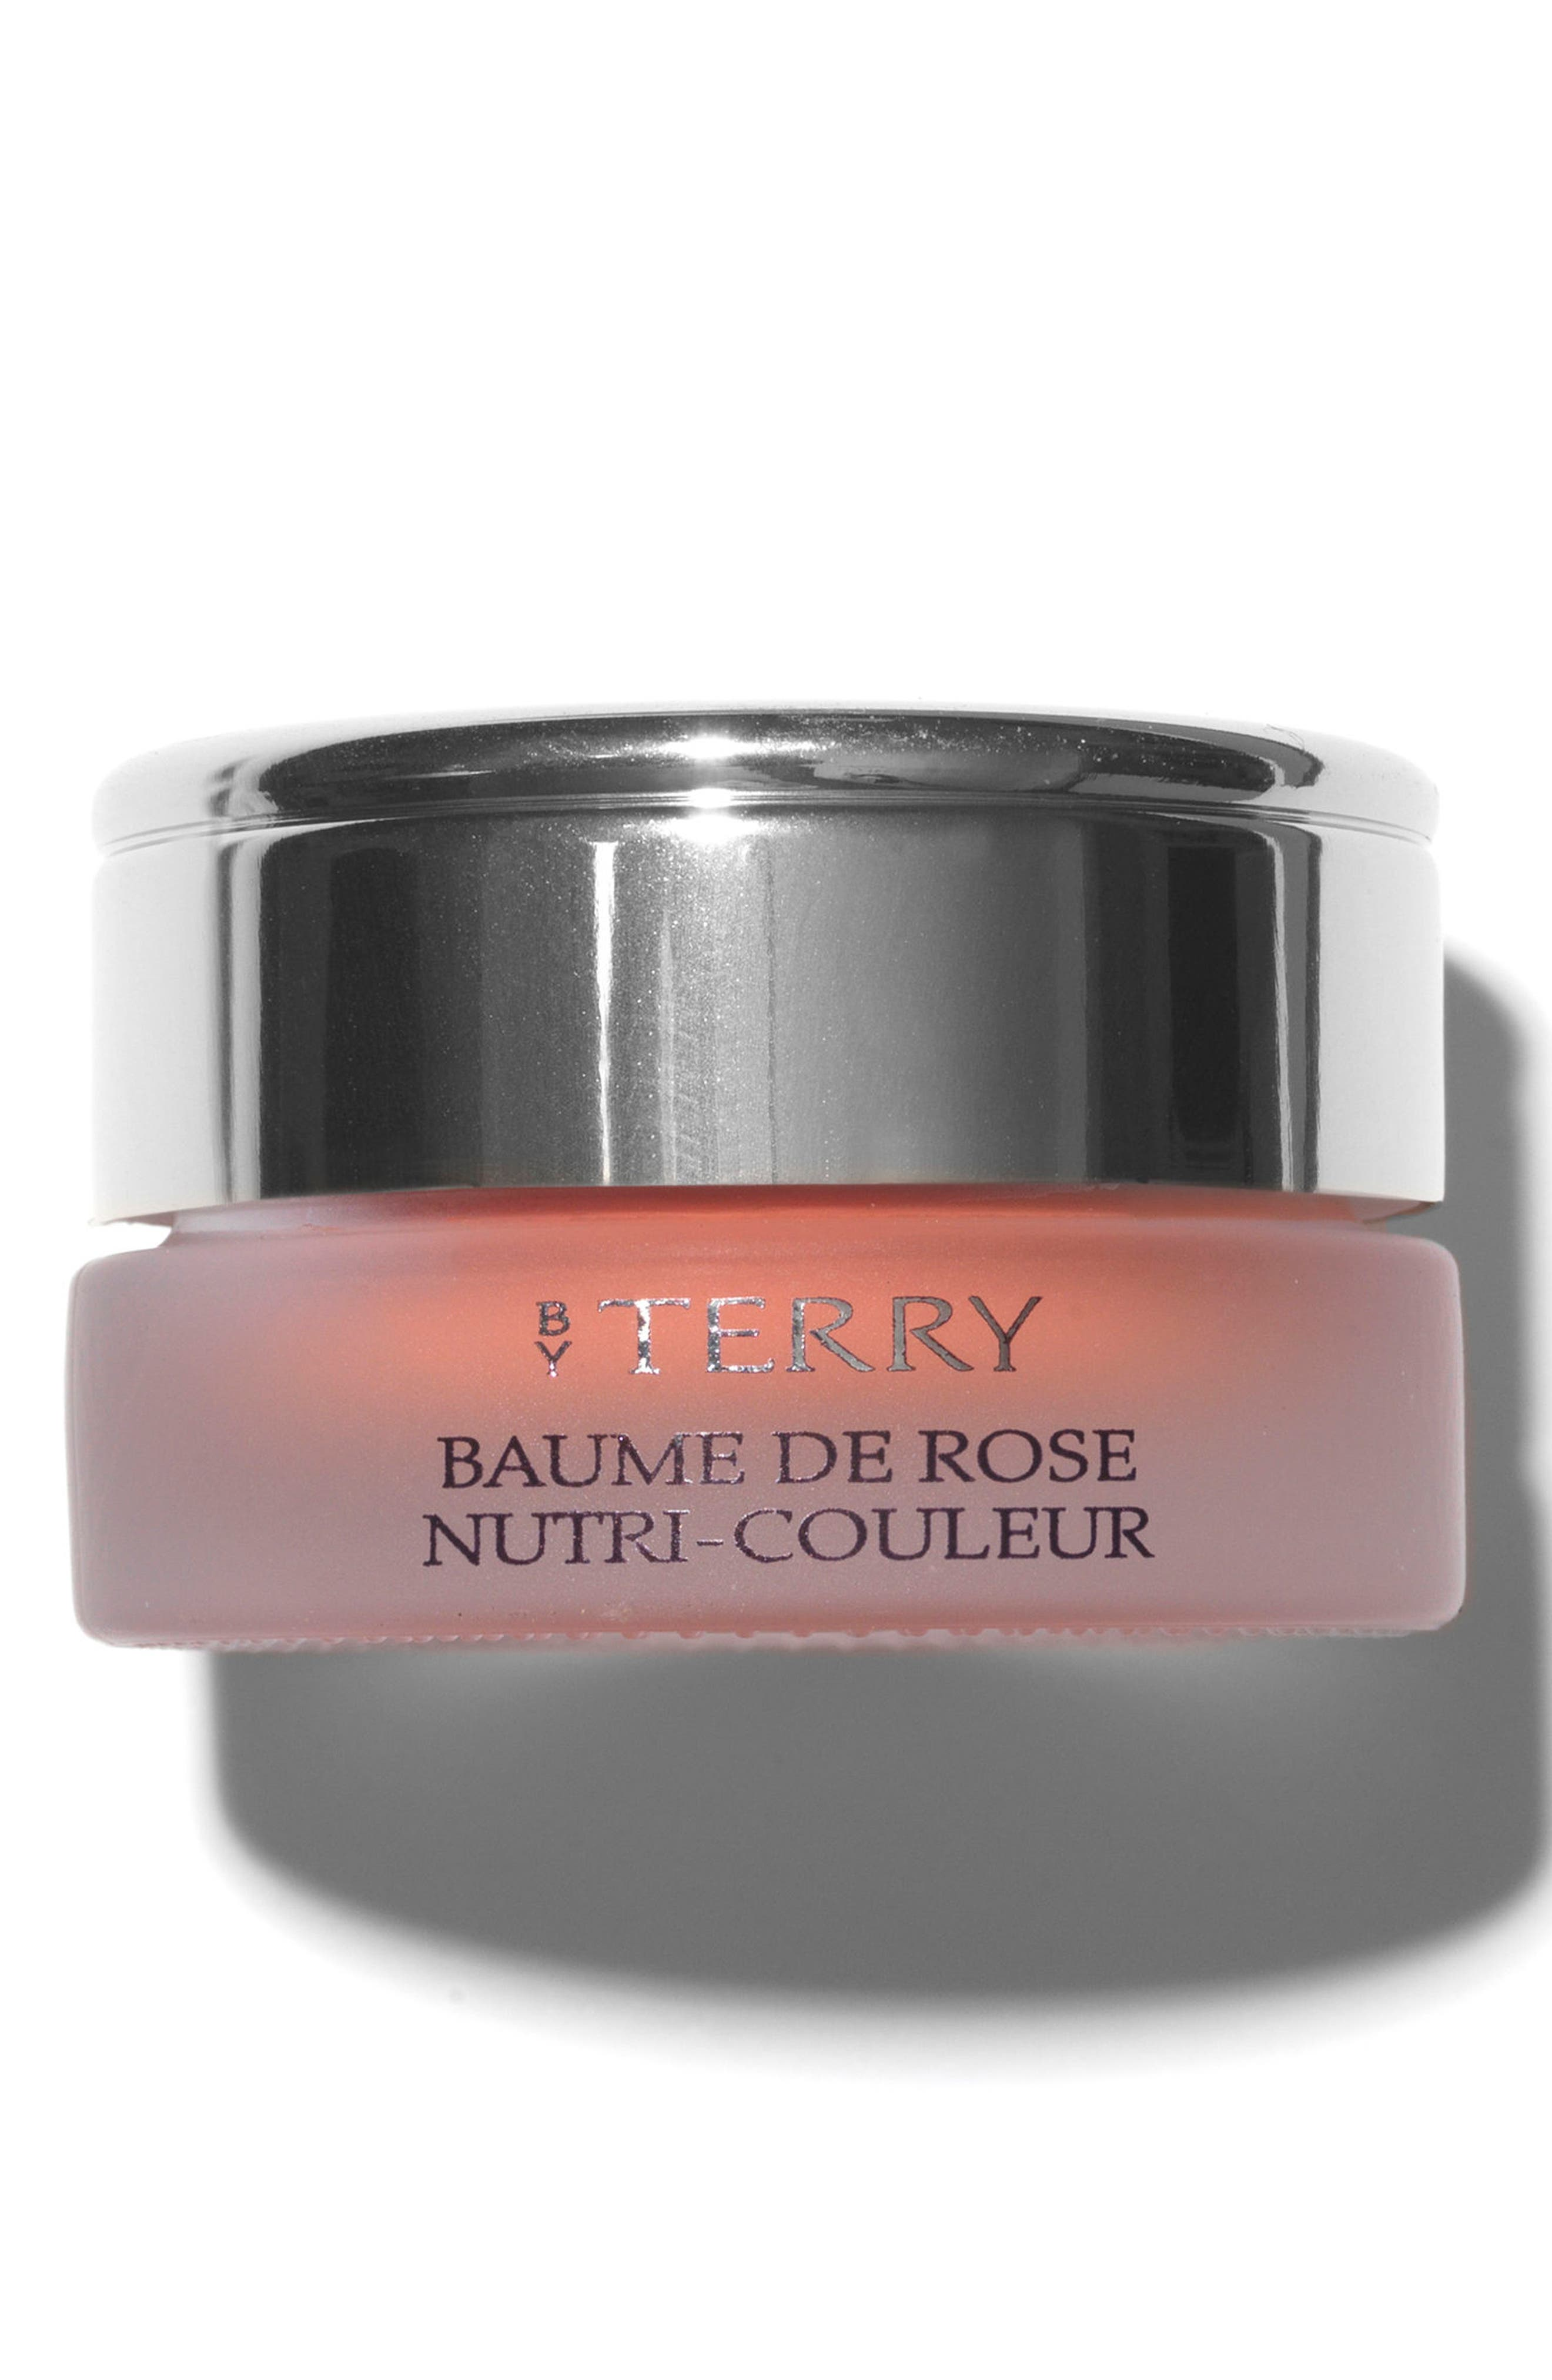 SPACE.NK.apothecary By Terry Baume de Rose Nutri-Couleur,                             Main thumbnail 1, color,                             1 Rosy Babe